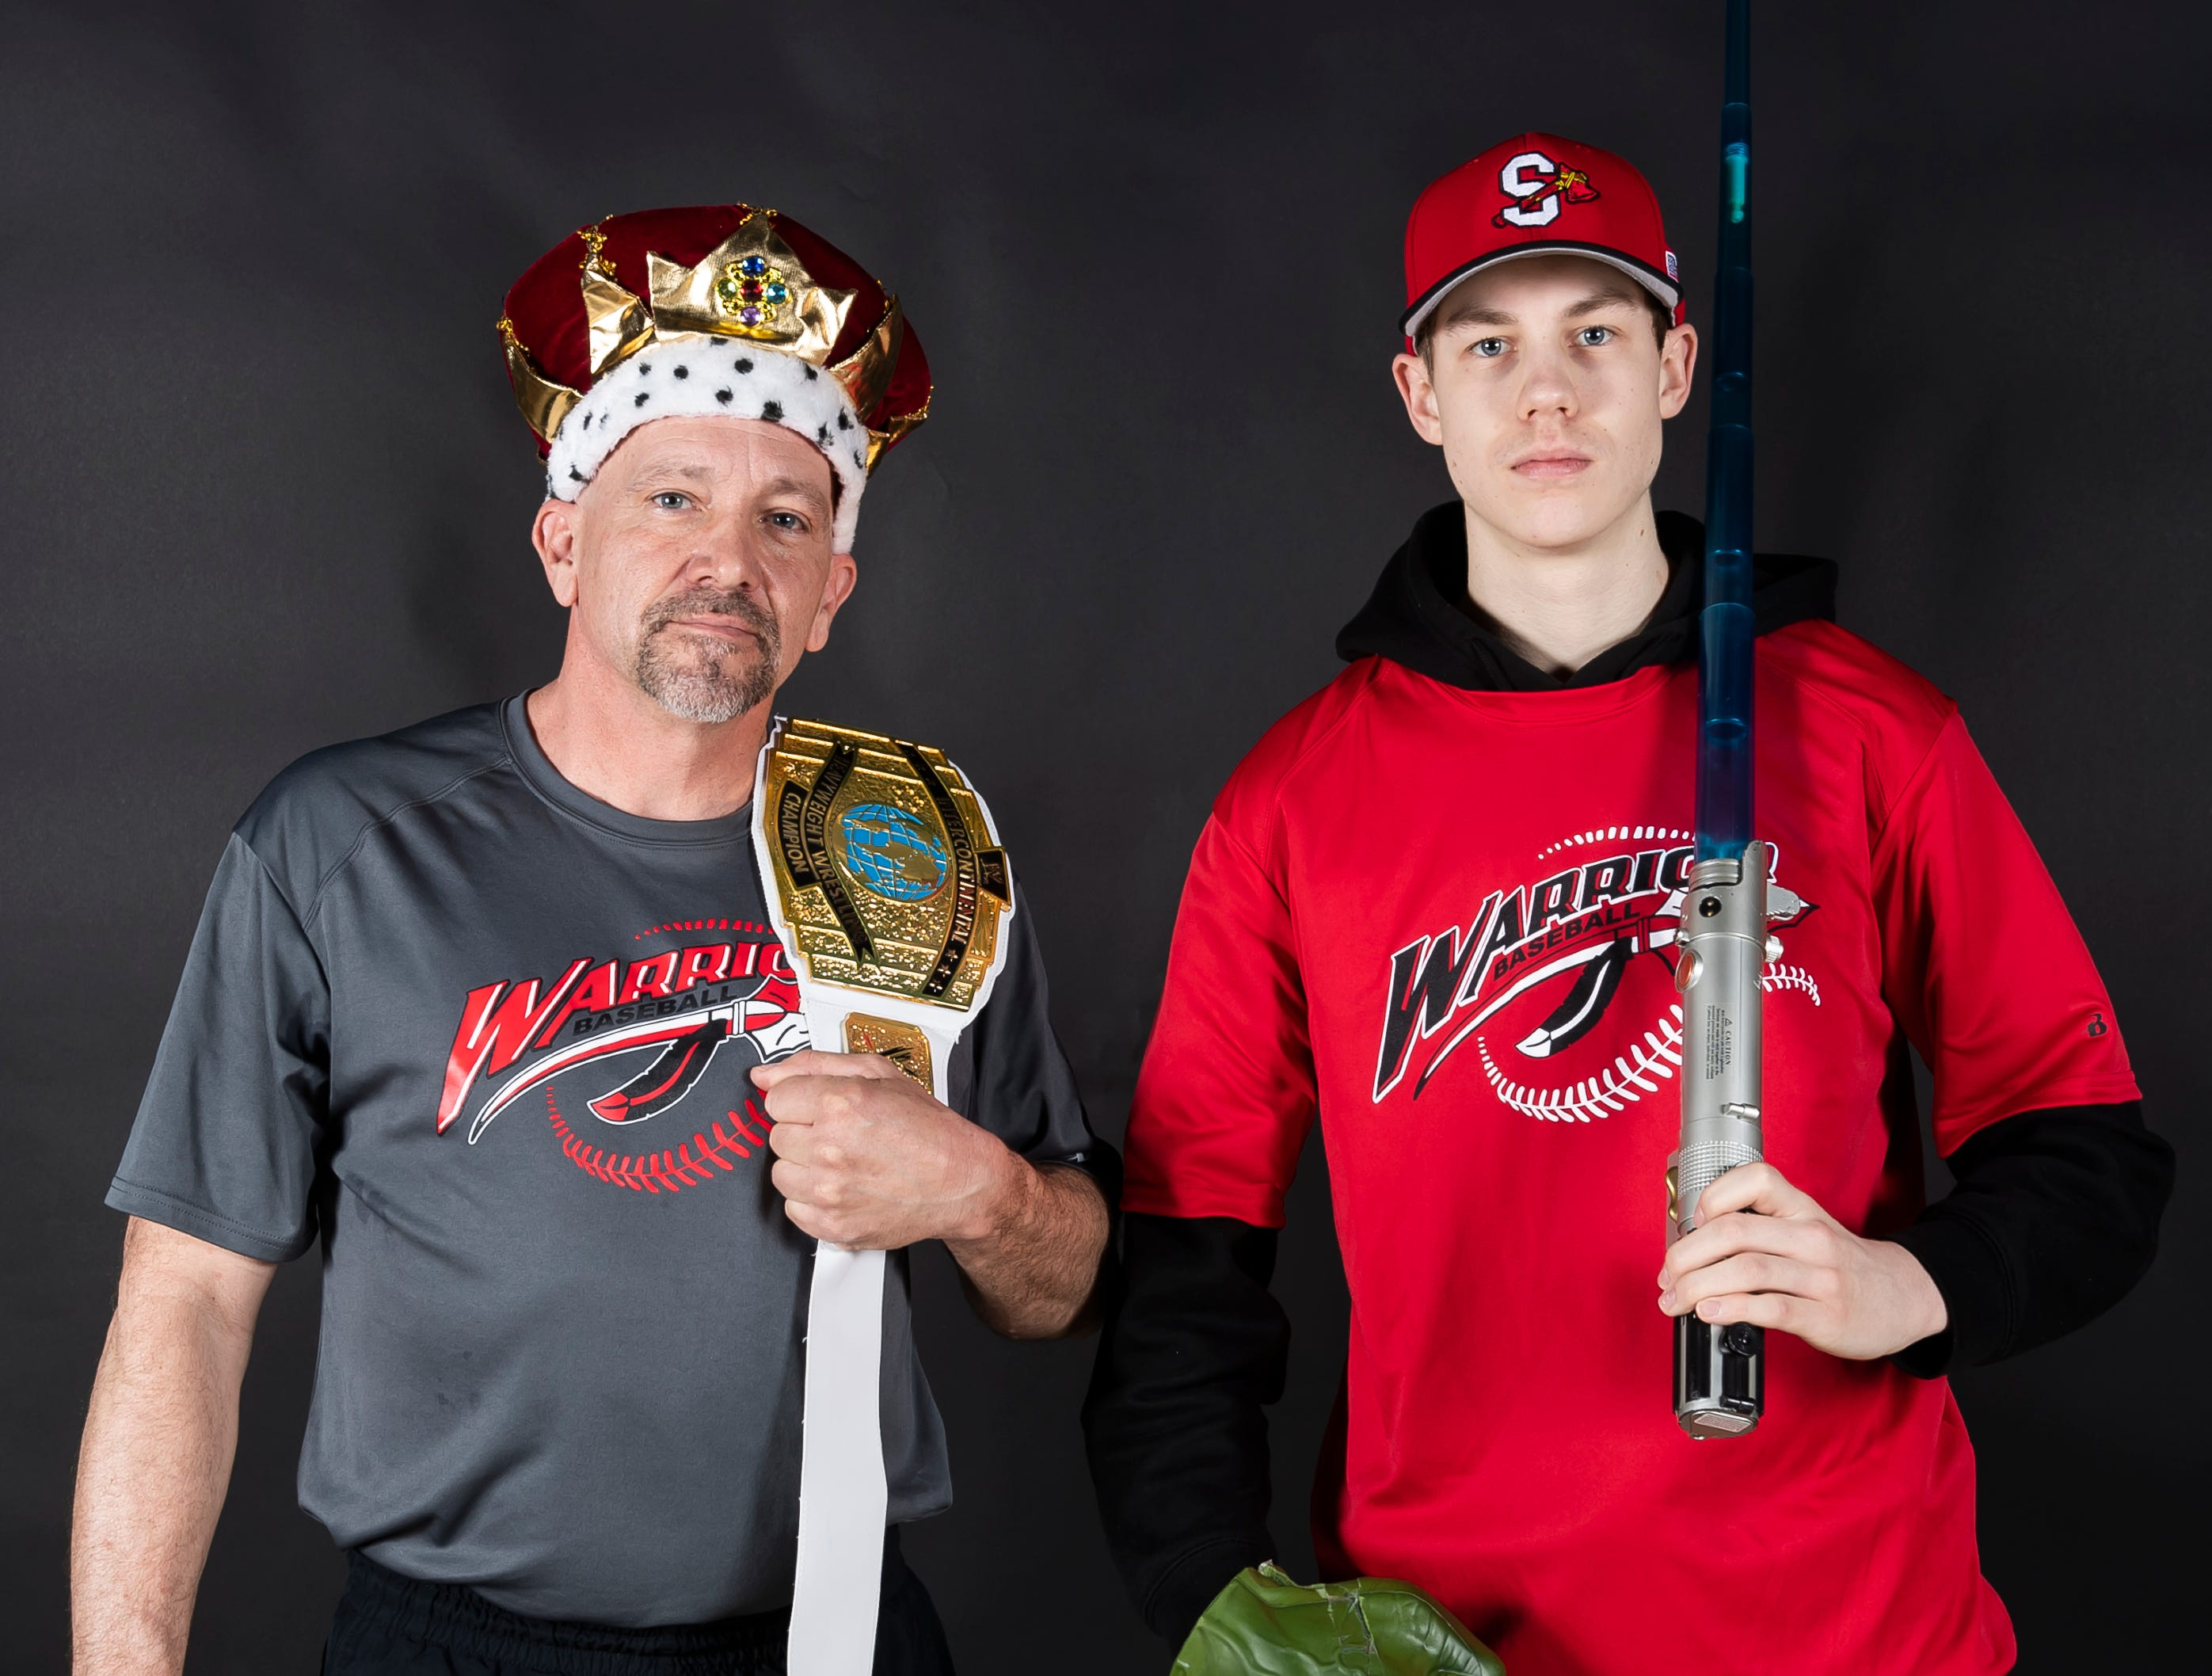 Susquehannock baseball coach Chad Farmer and player Noah Miller strike a pose in the GameTimePA photo booth during spring sports media day in York Sunday, March 10, 2019.